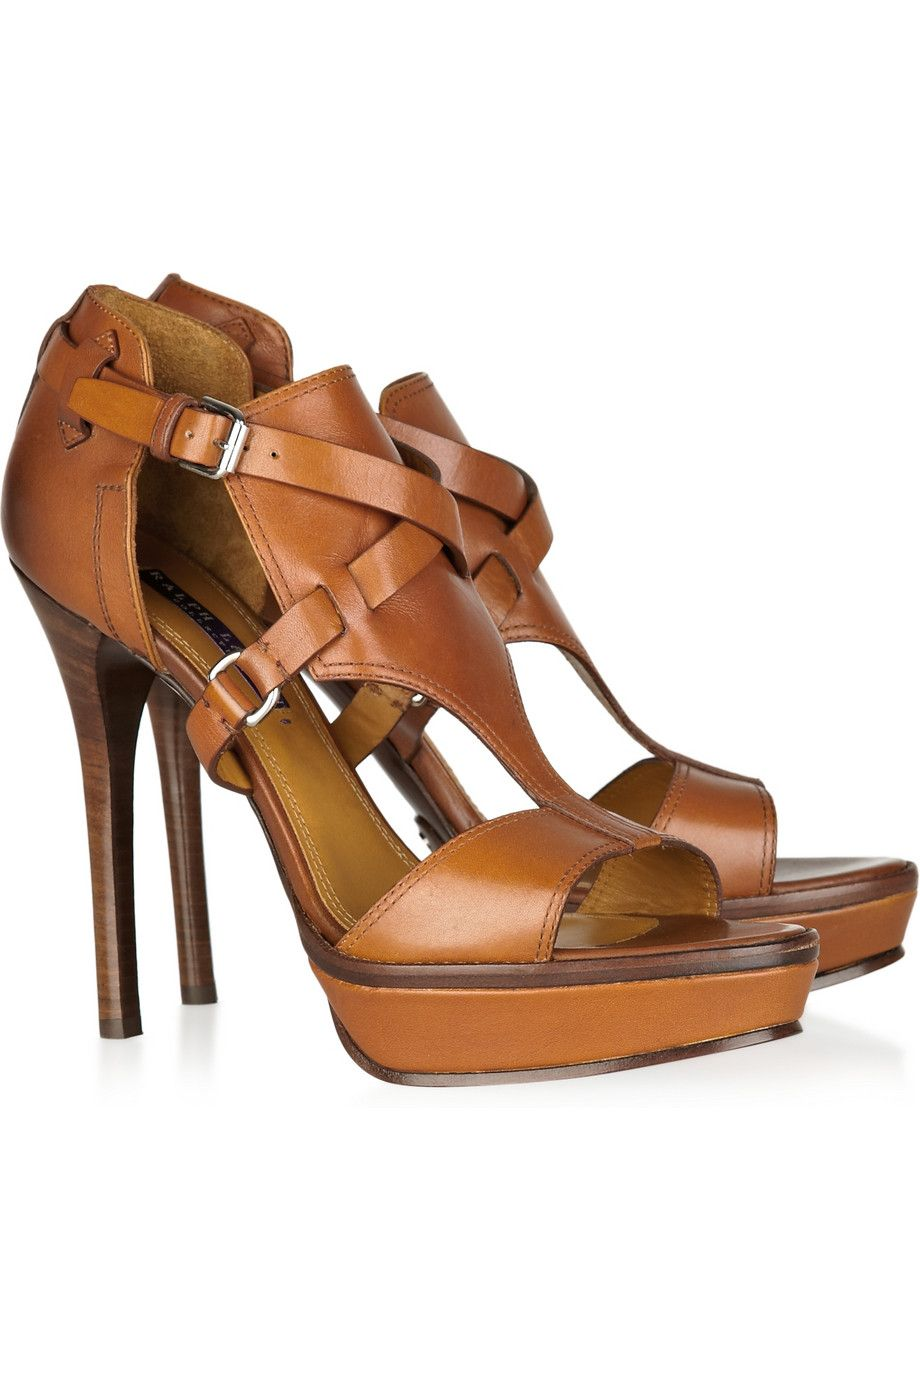 a365a9e2d58 RALPH LAUREN COLLECTION Bailee leather sandals  695     with this price